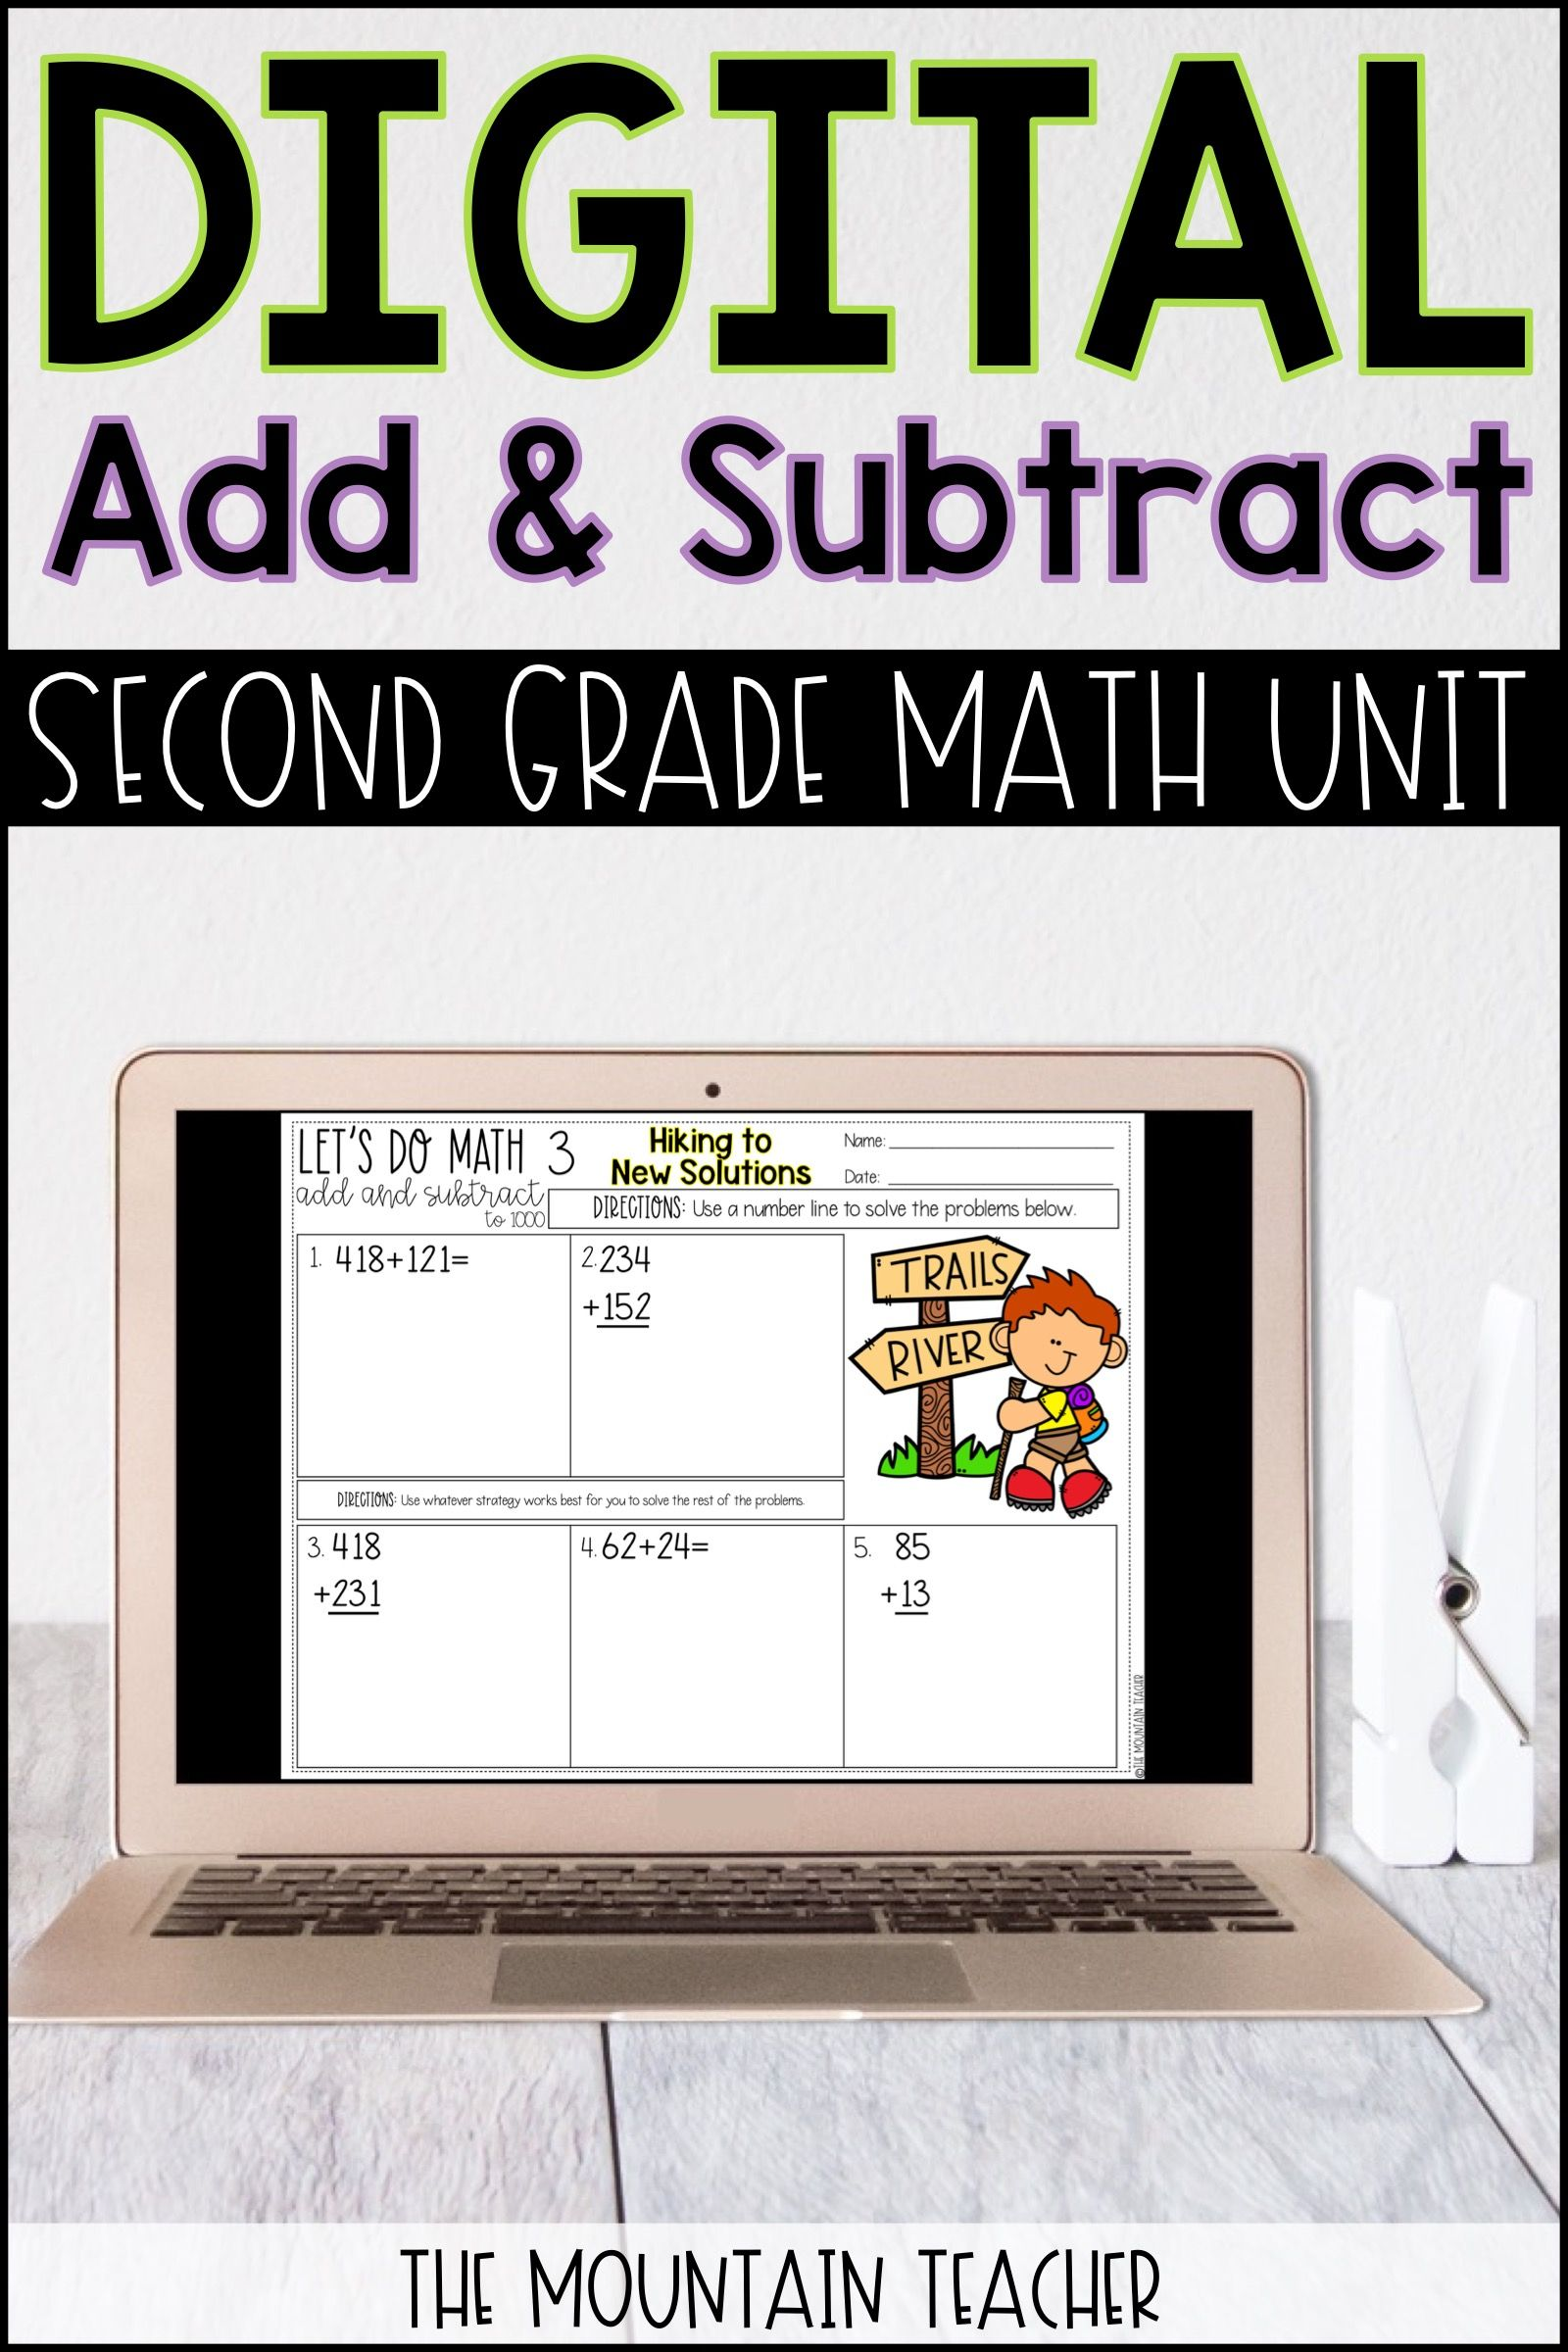 Digital Lets Do Math No Prep 2nd Grade Add And Subtract To 1000 Unit Elementary Math Lessons Teaching Schools Teaching Elementary